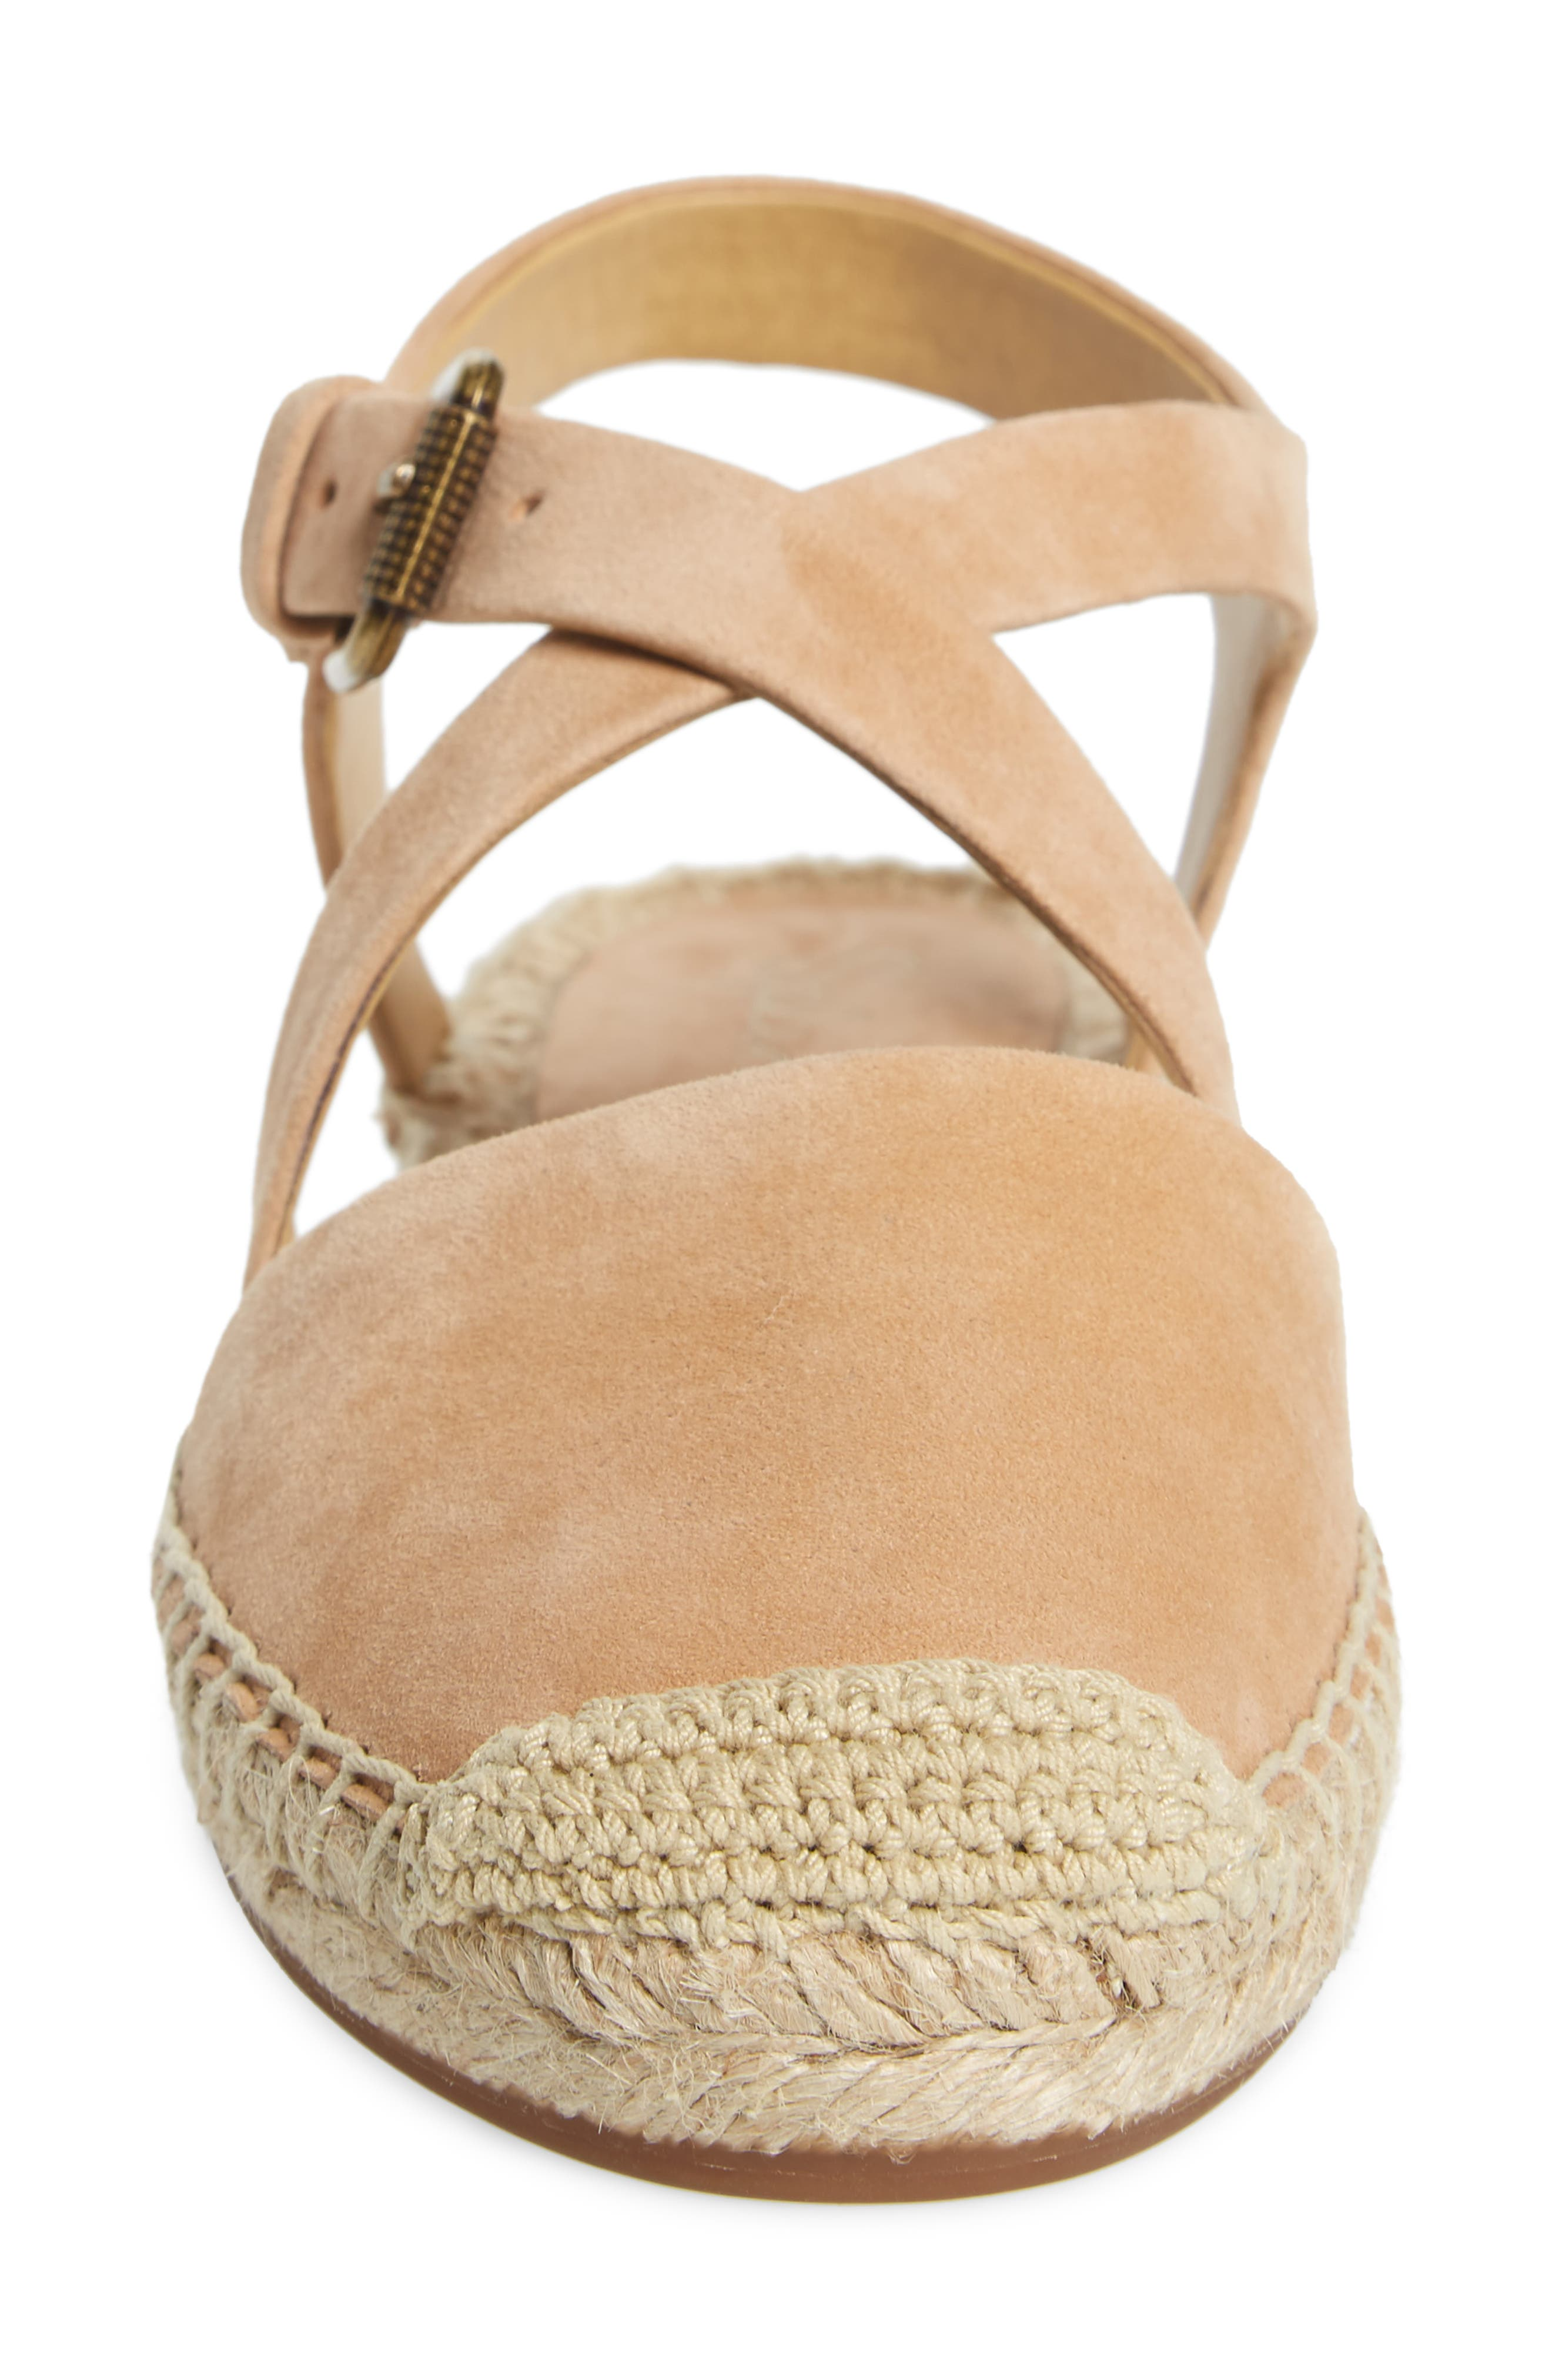 Foley Espadrille Flat,                             Alternate thumbnail 4, color,                             Nude Suede